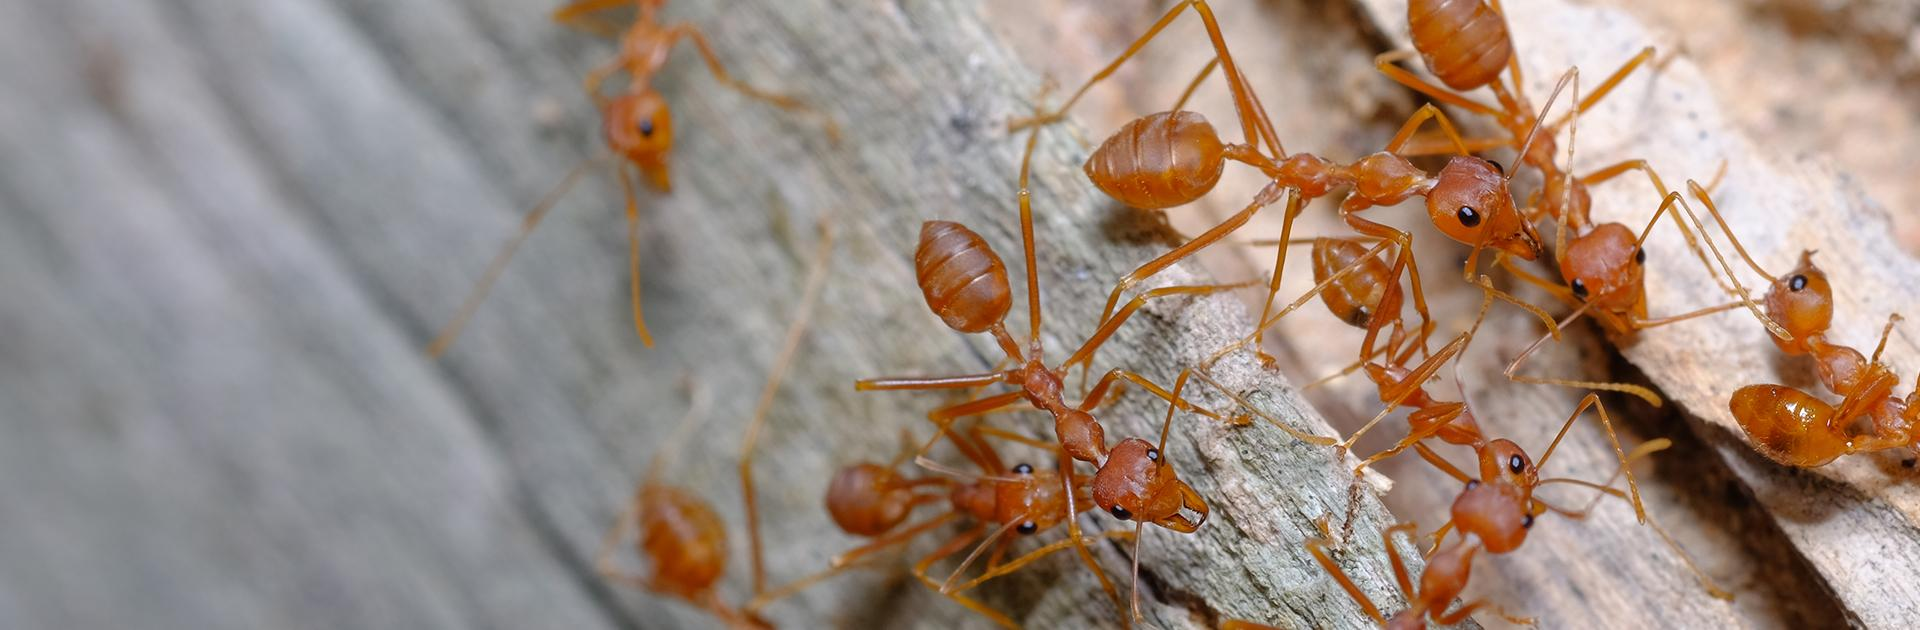 red fire ants on fallen tree